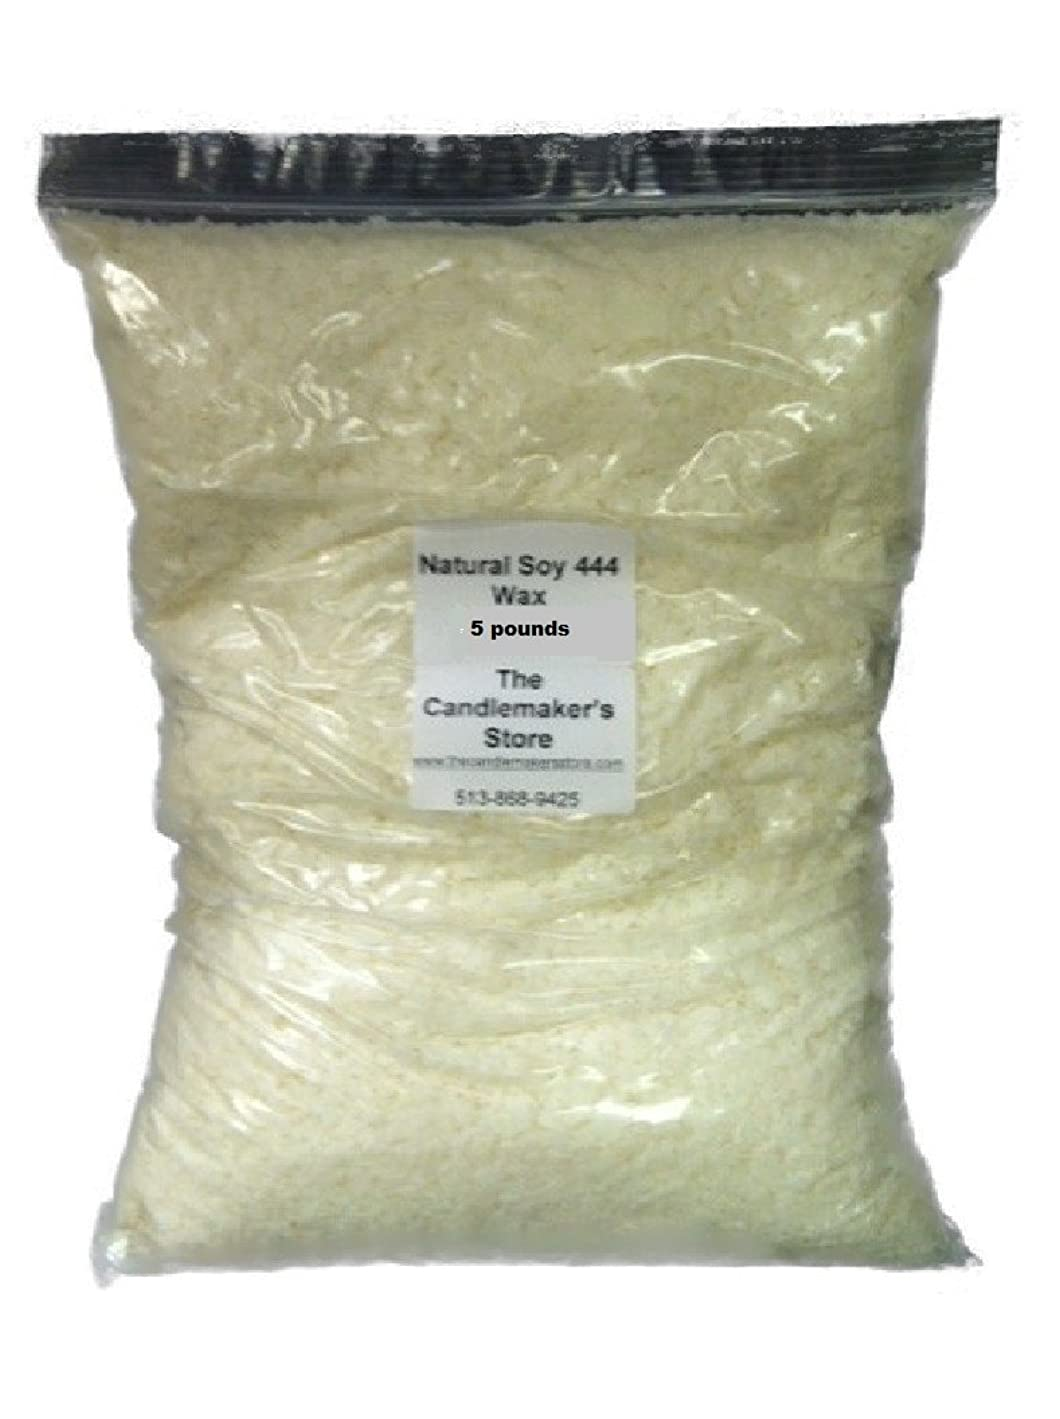 Natural Soy 444 Wax: 5 pound bag by Golden Brands j88746088272609